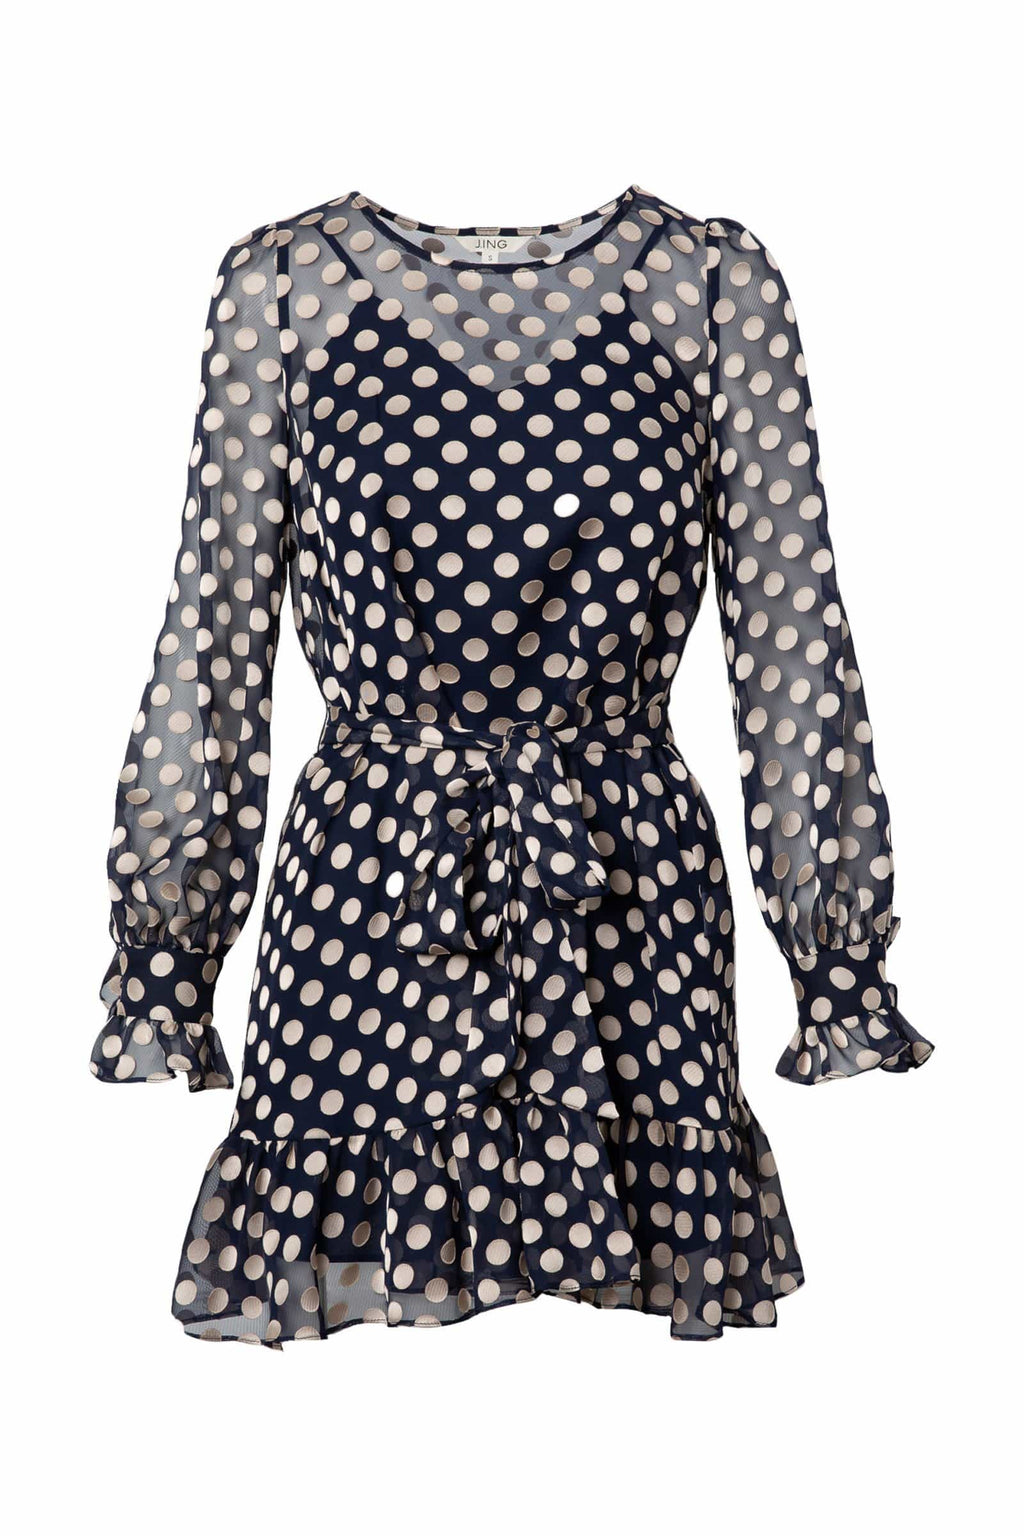 Queenie Polka Dot Sheer Dress by J.ING Women's Clothing